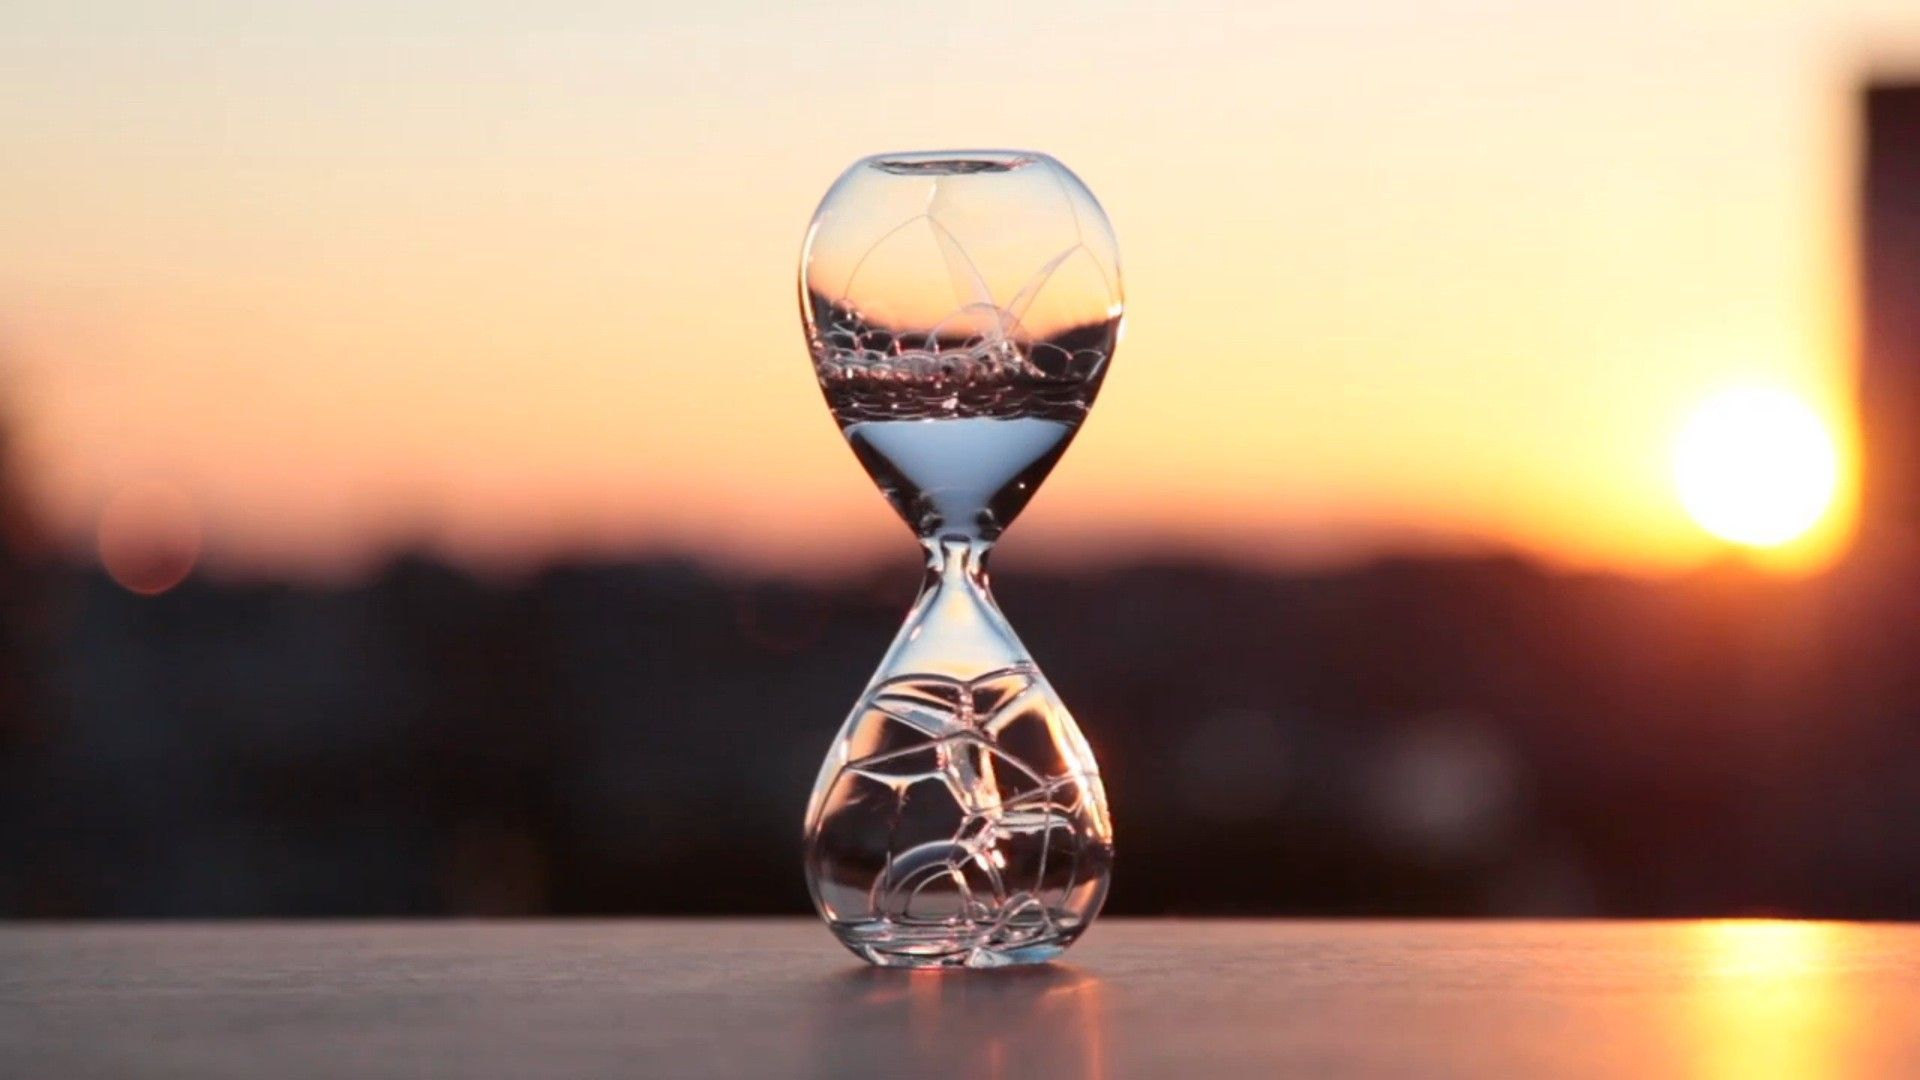 hourglass wallpaper | time wallpaper | pinterest | clock wallpaper